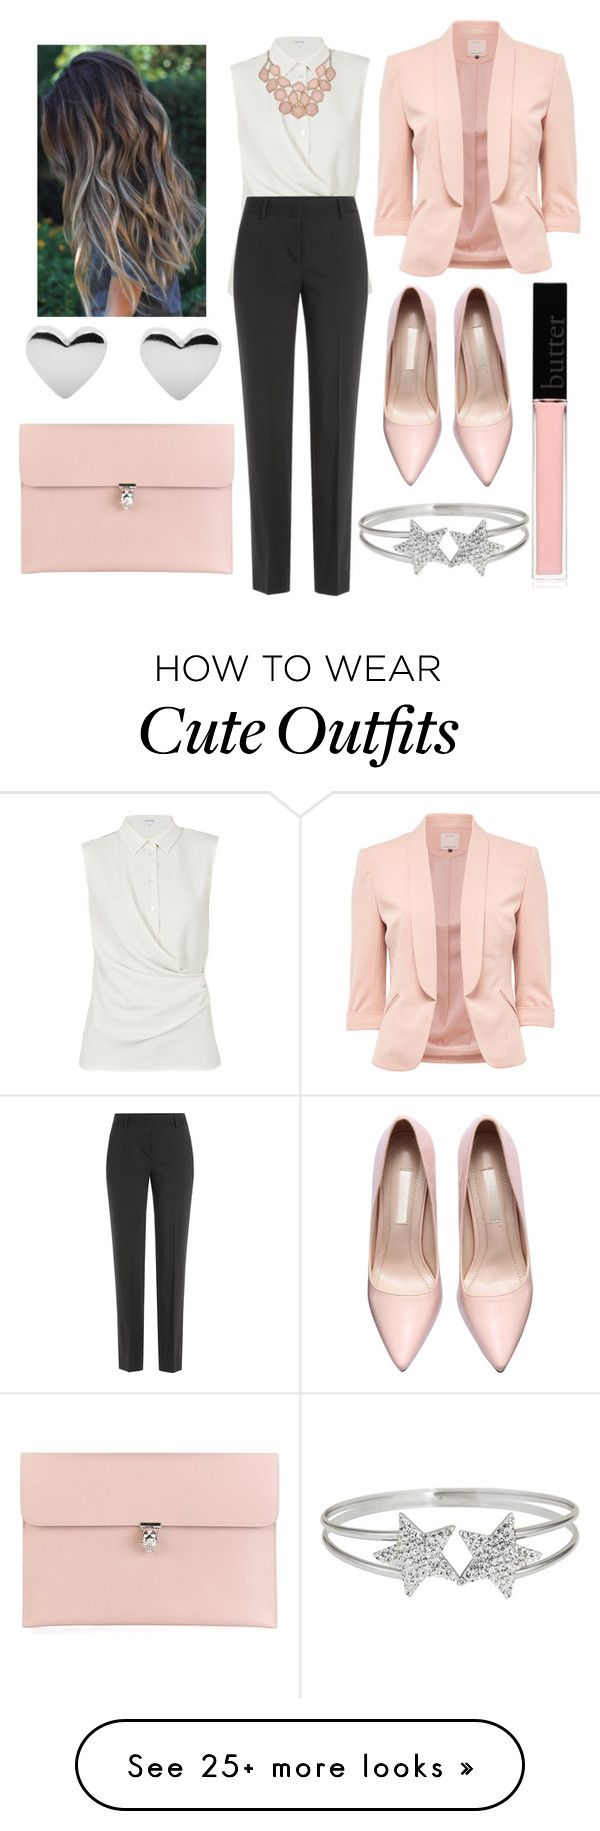 """Cute Outfit #78"" by misspolyvoric on Polyvore featuring Carven, DKNY, Butter London, Alexander McQueen, women's clothing, women, female, woman, misses and juniors"